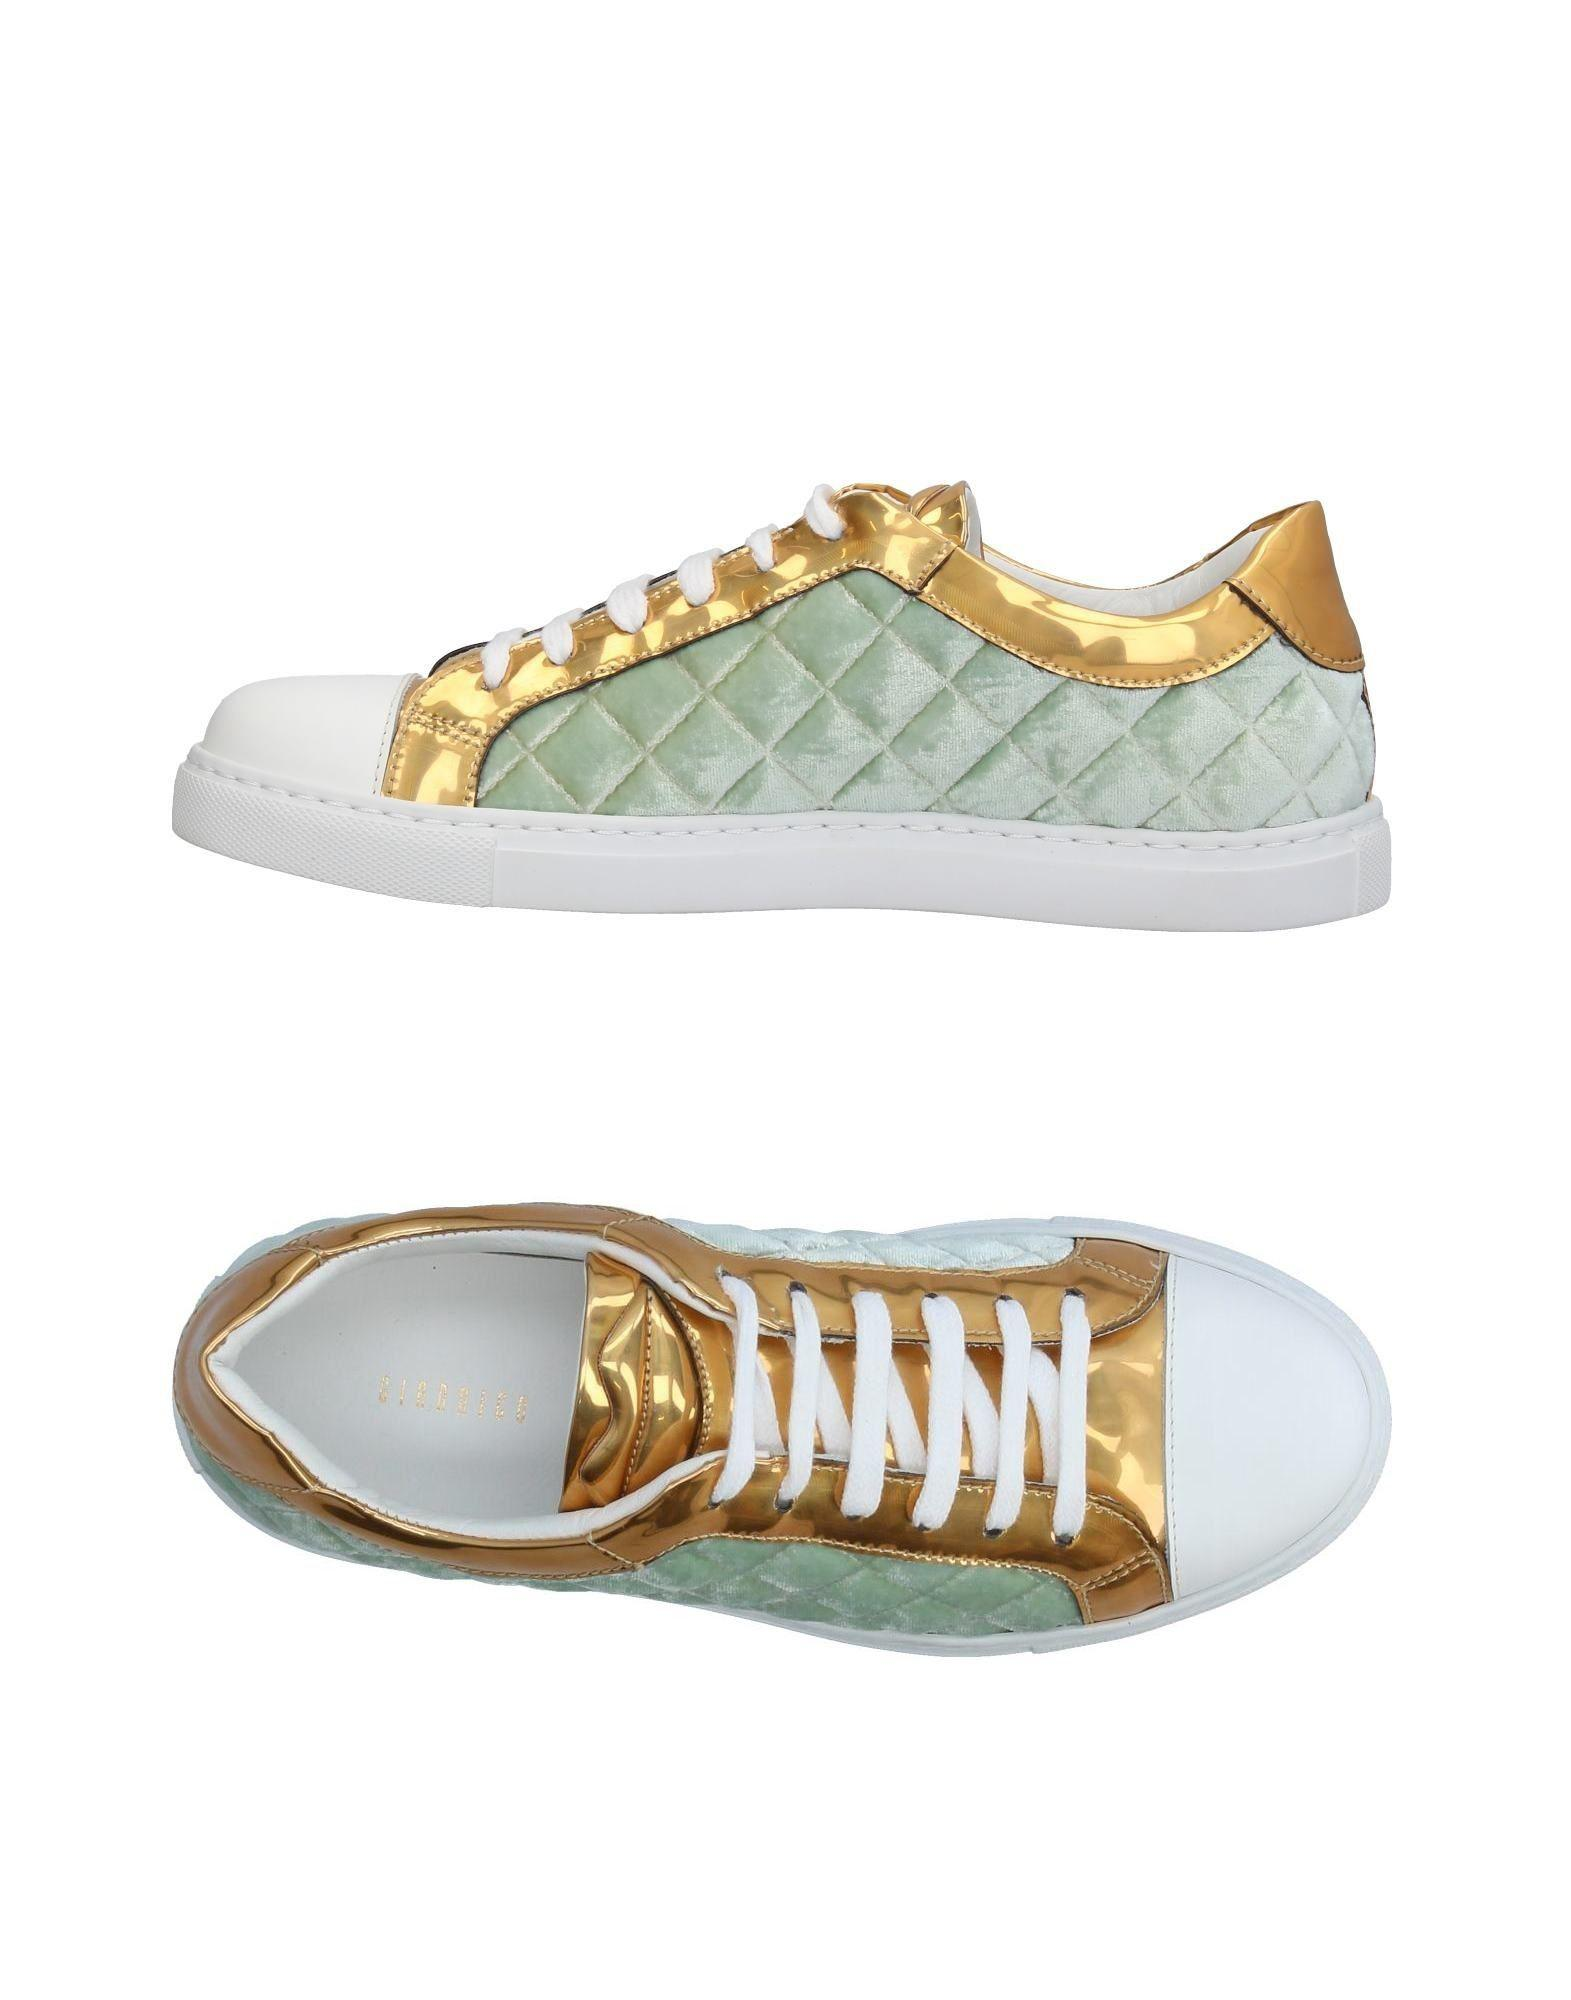 FOOTWEAR - Low-tops & sneakers Giannico a6v09bExrR